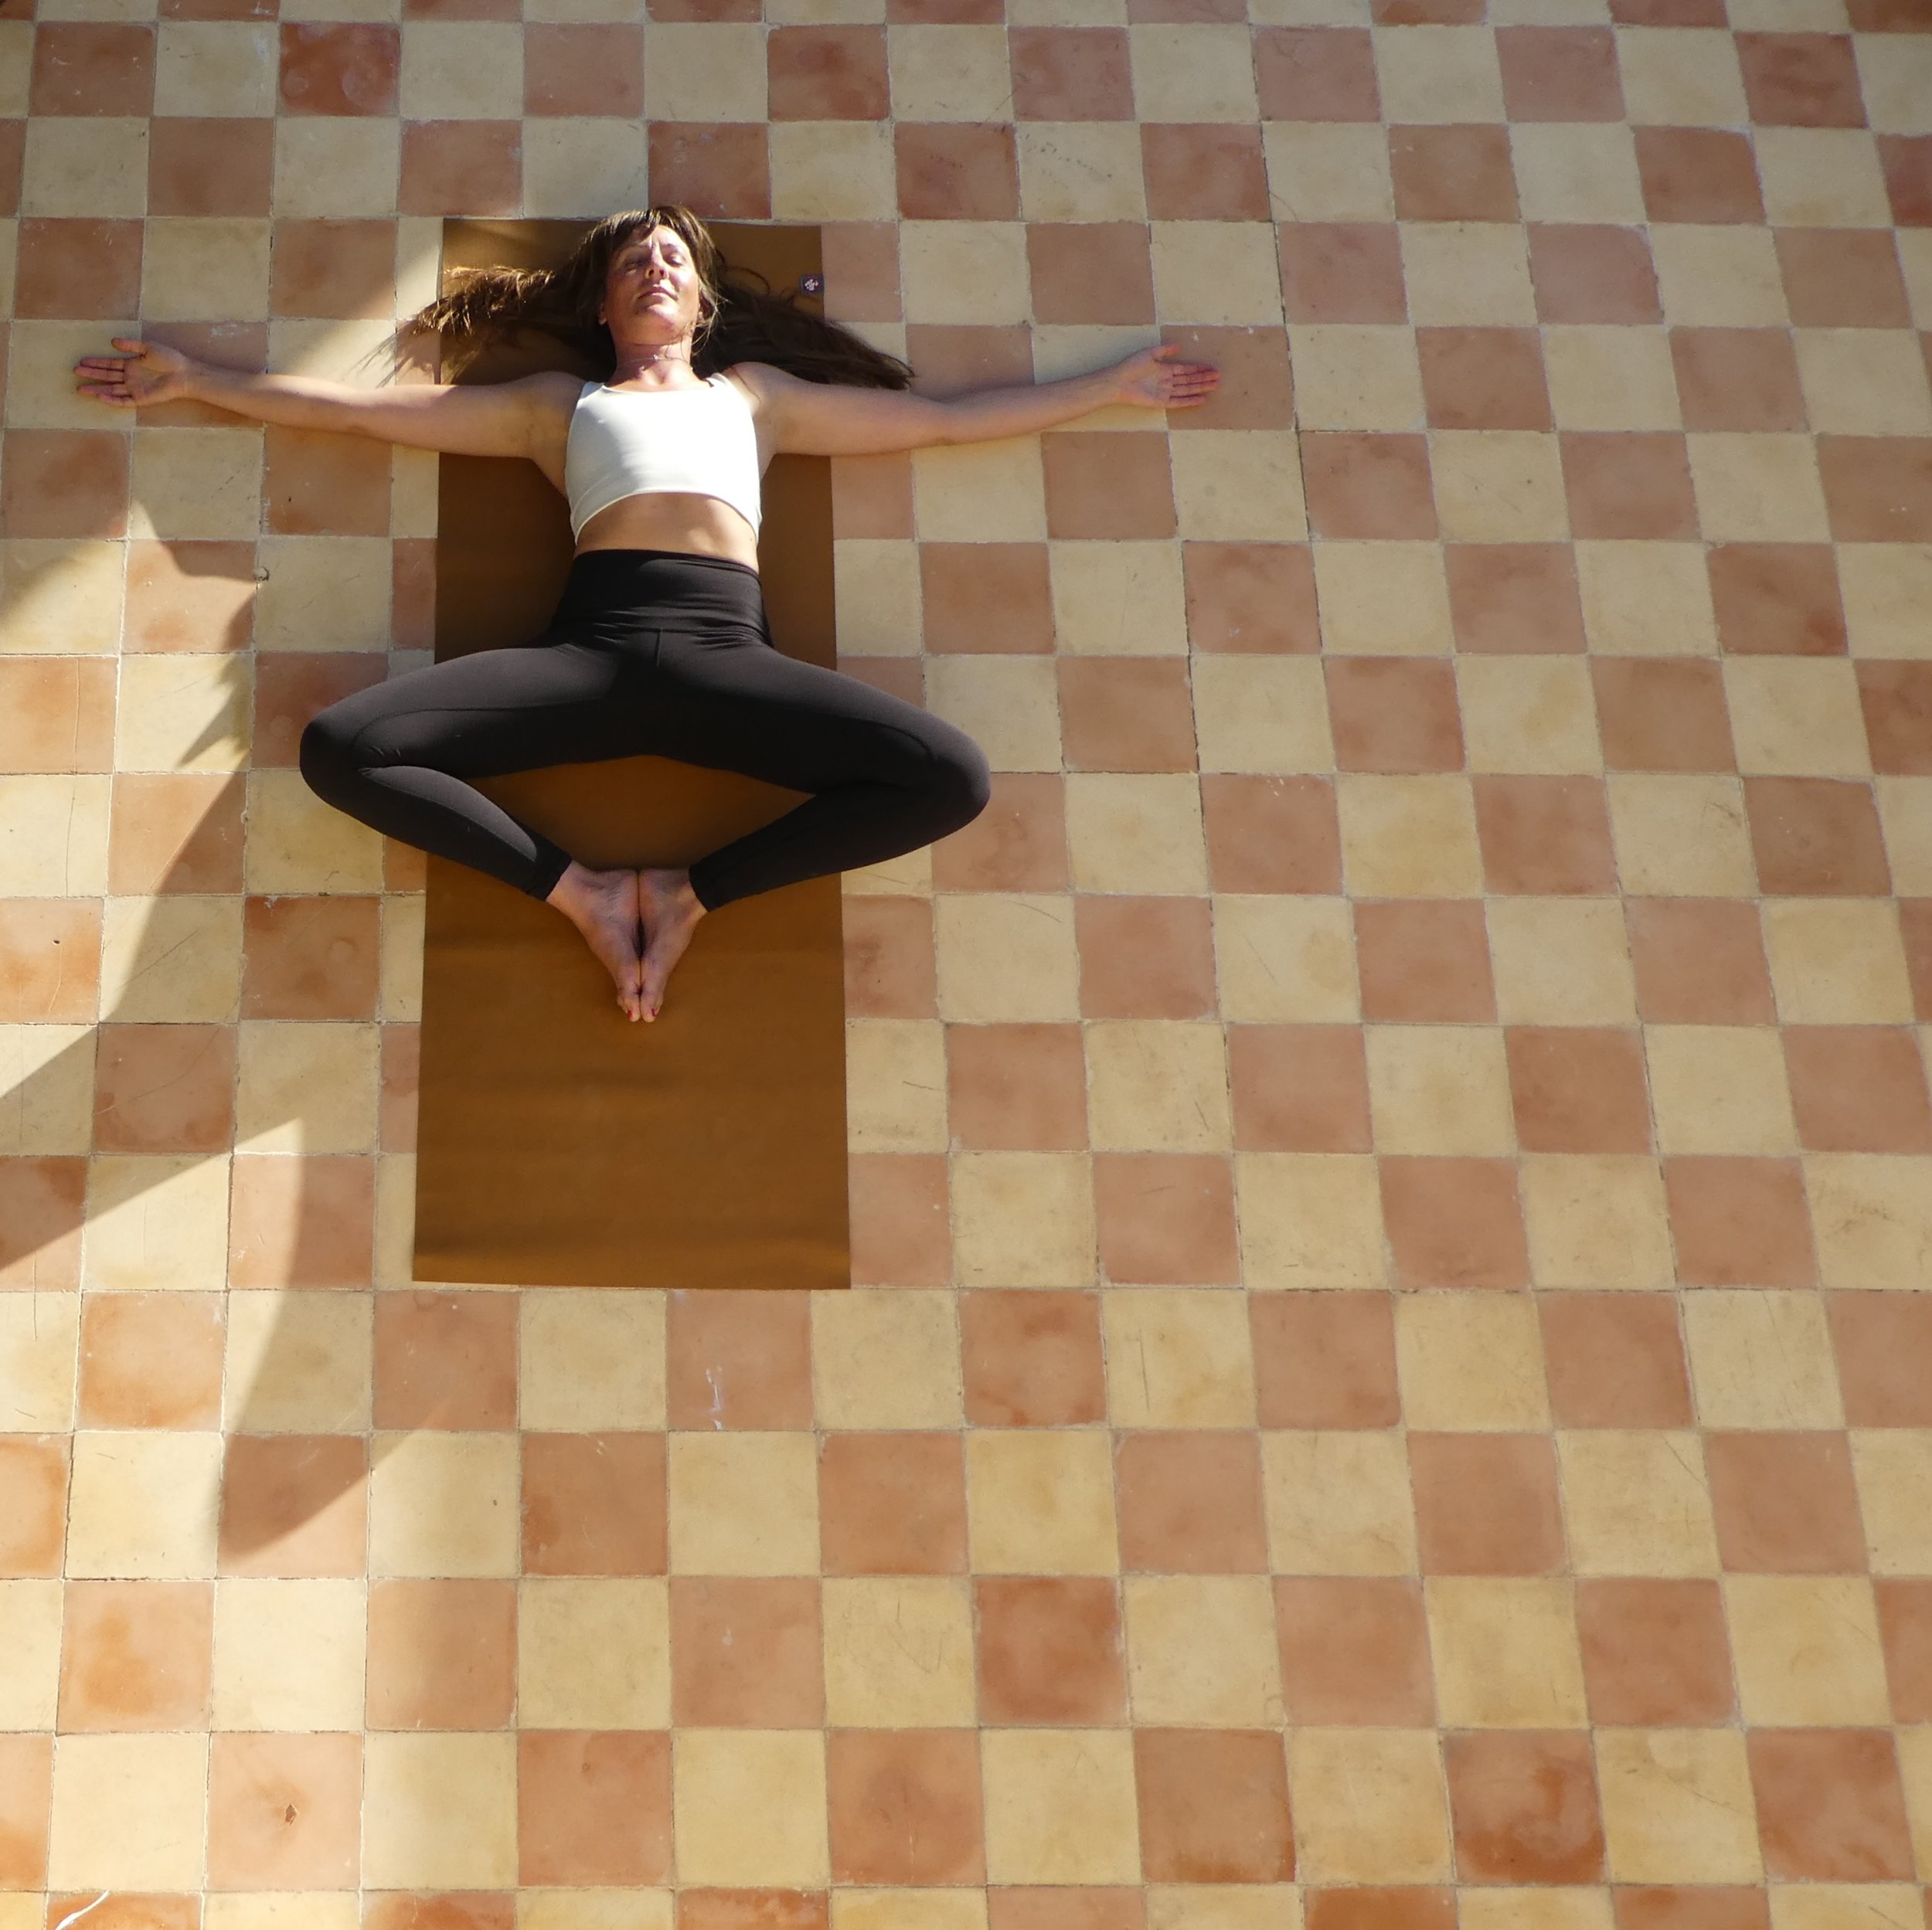 Butterfly with open arms. - Soles of the feet together, draw your legs into a diamond.allow your arms to spread outwards so as to open up the heart space too. Maybe place some blocks or books underneath the knees so as to stop the thighs overworking.